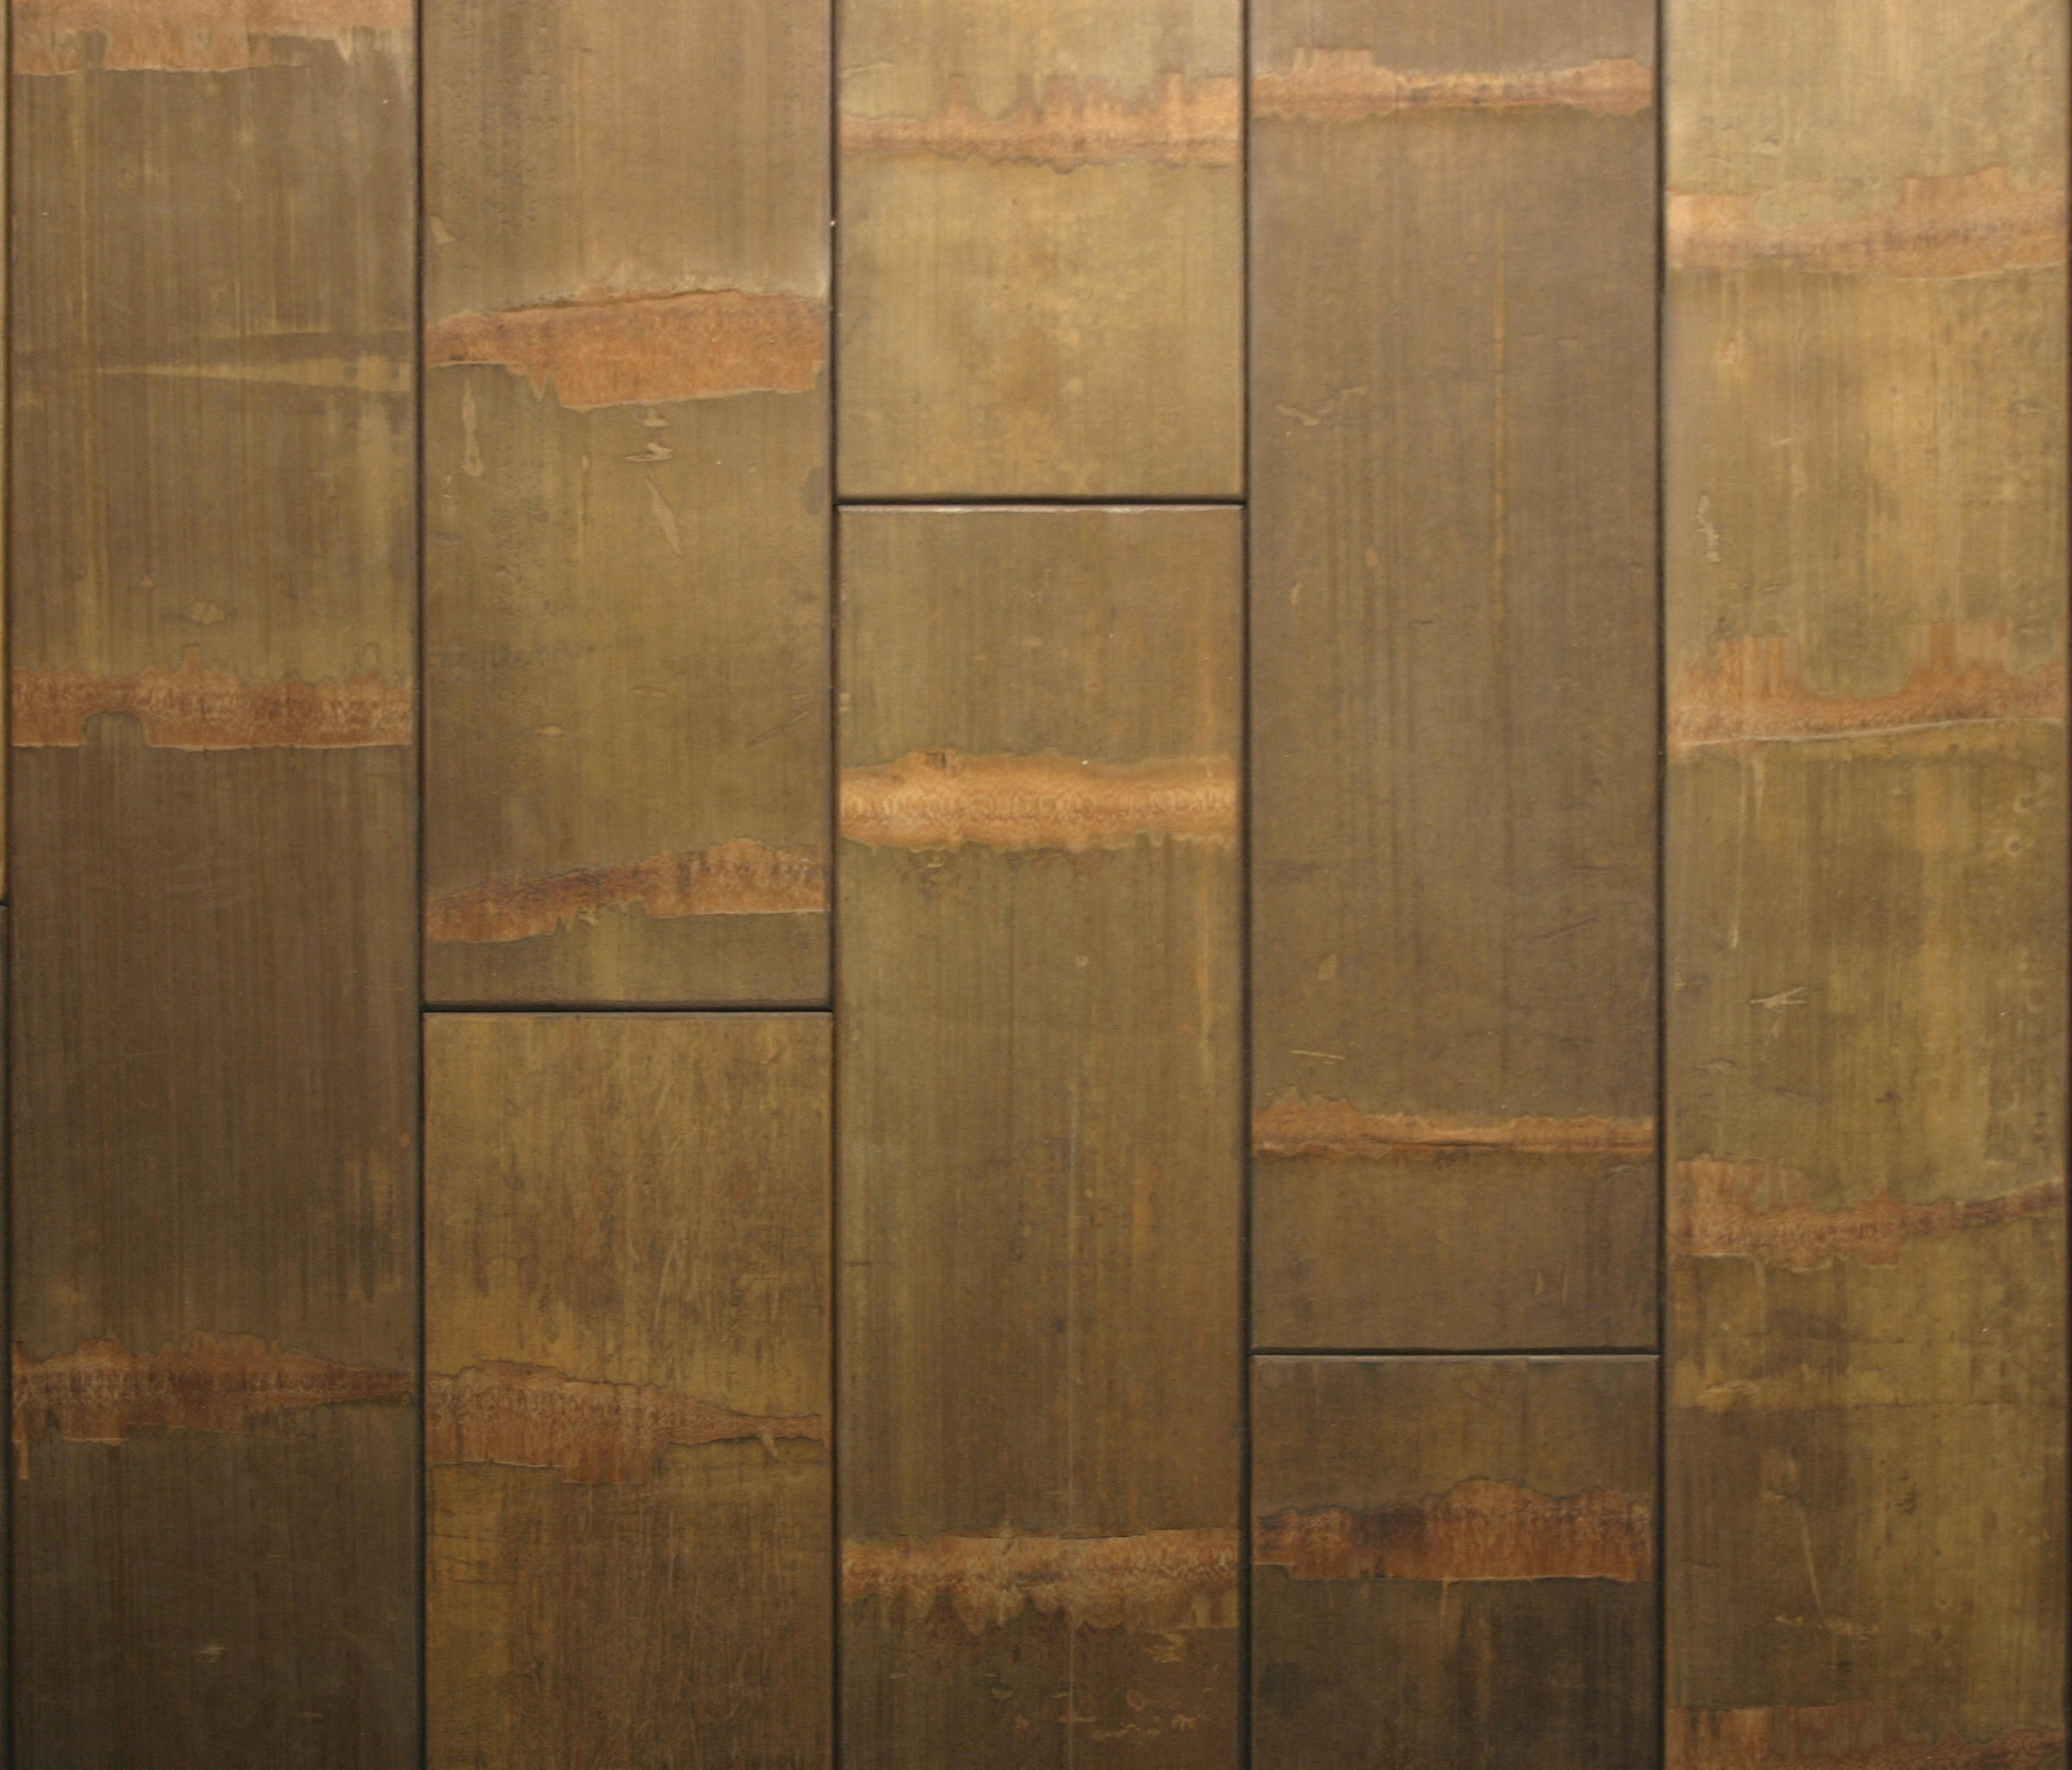 BAMBOO FOREST Bamboo flooring from MOSO bamboo products